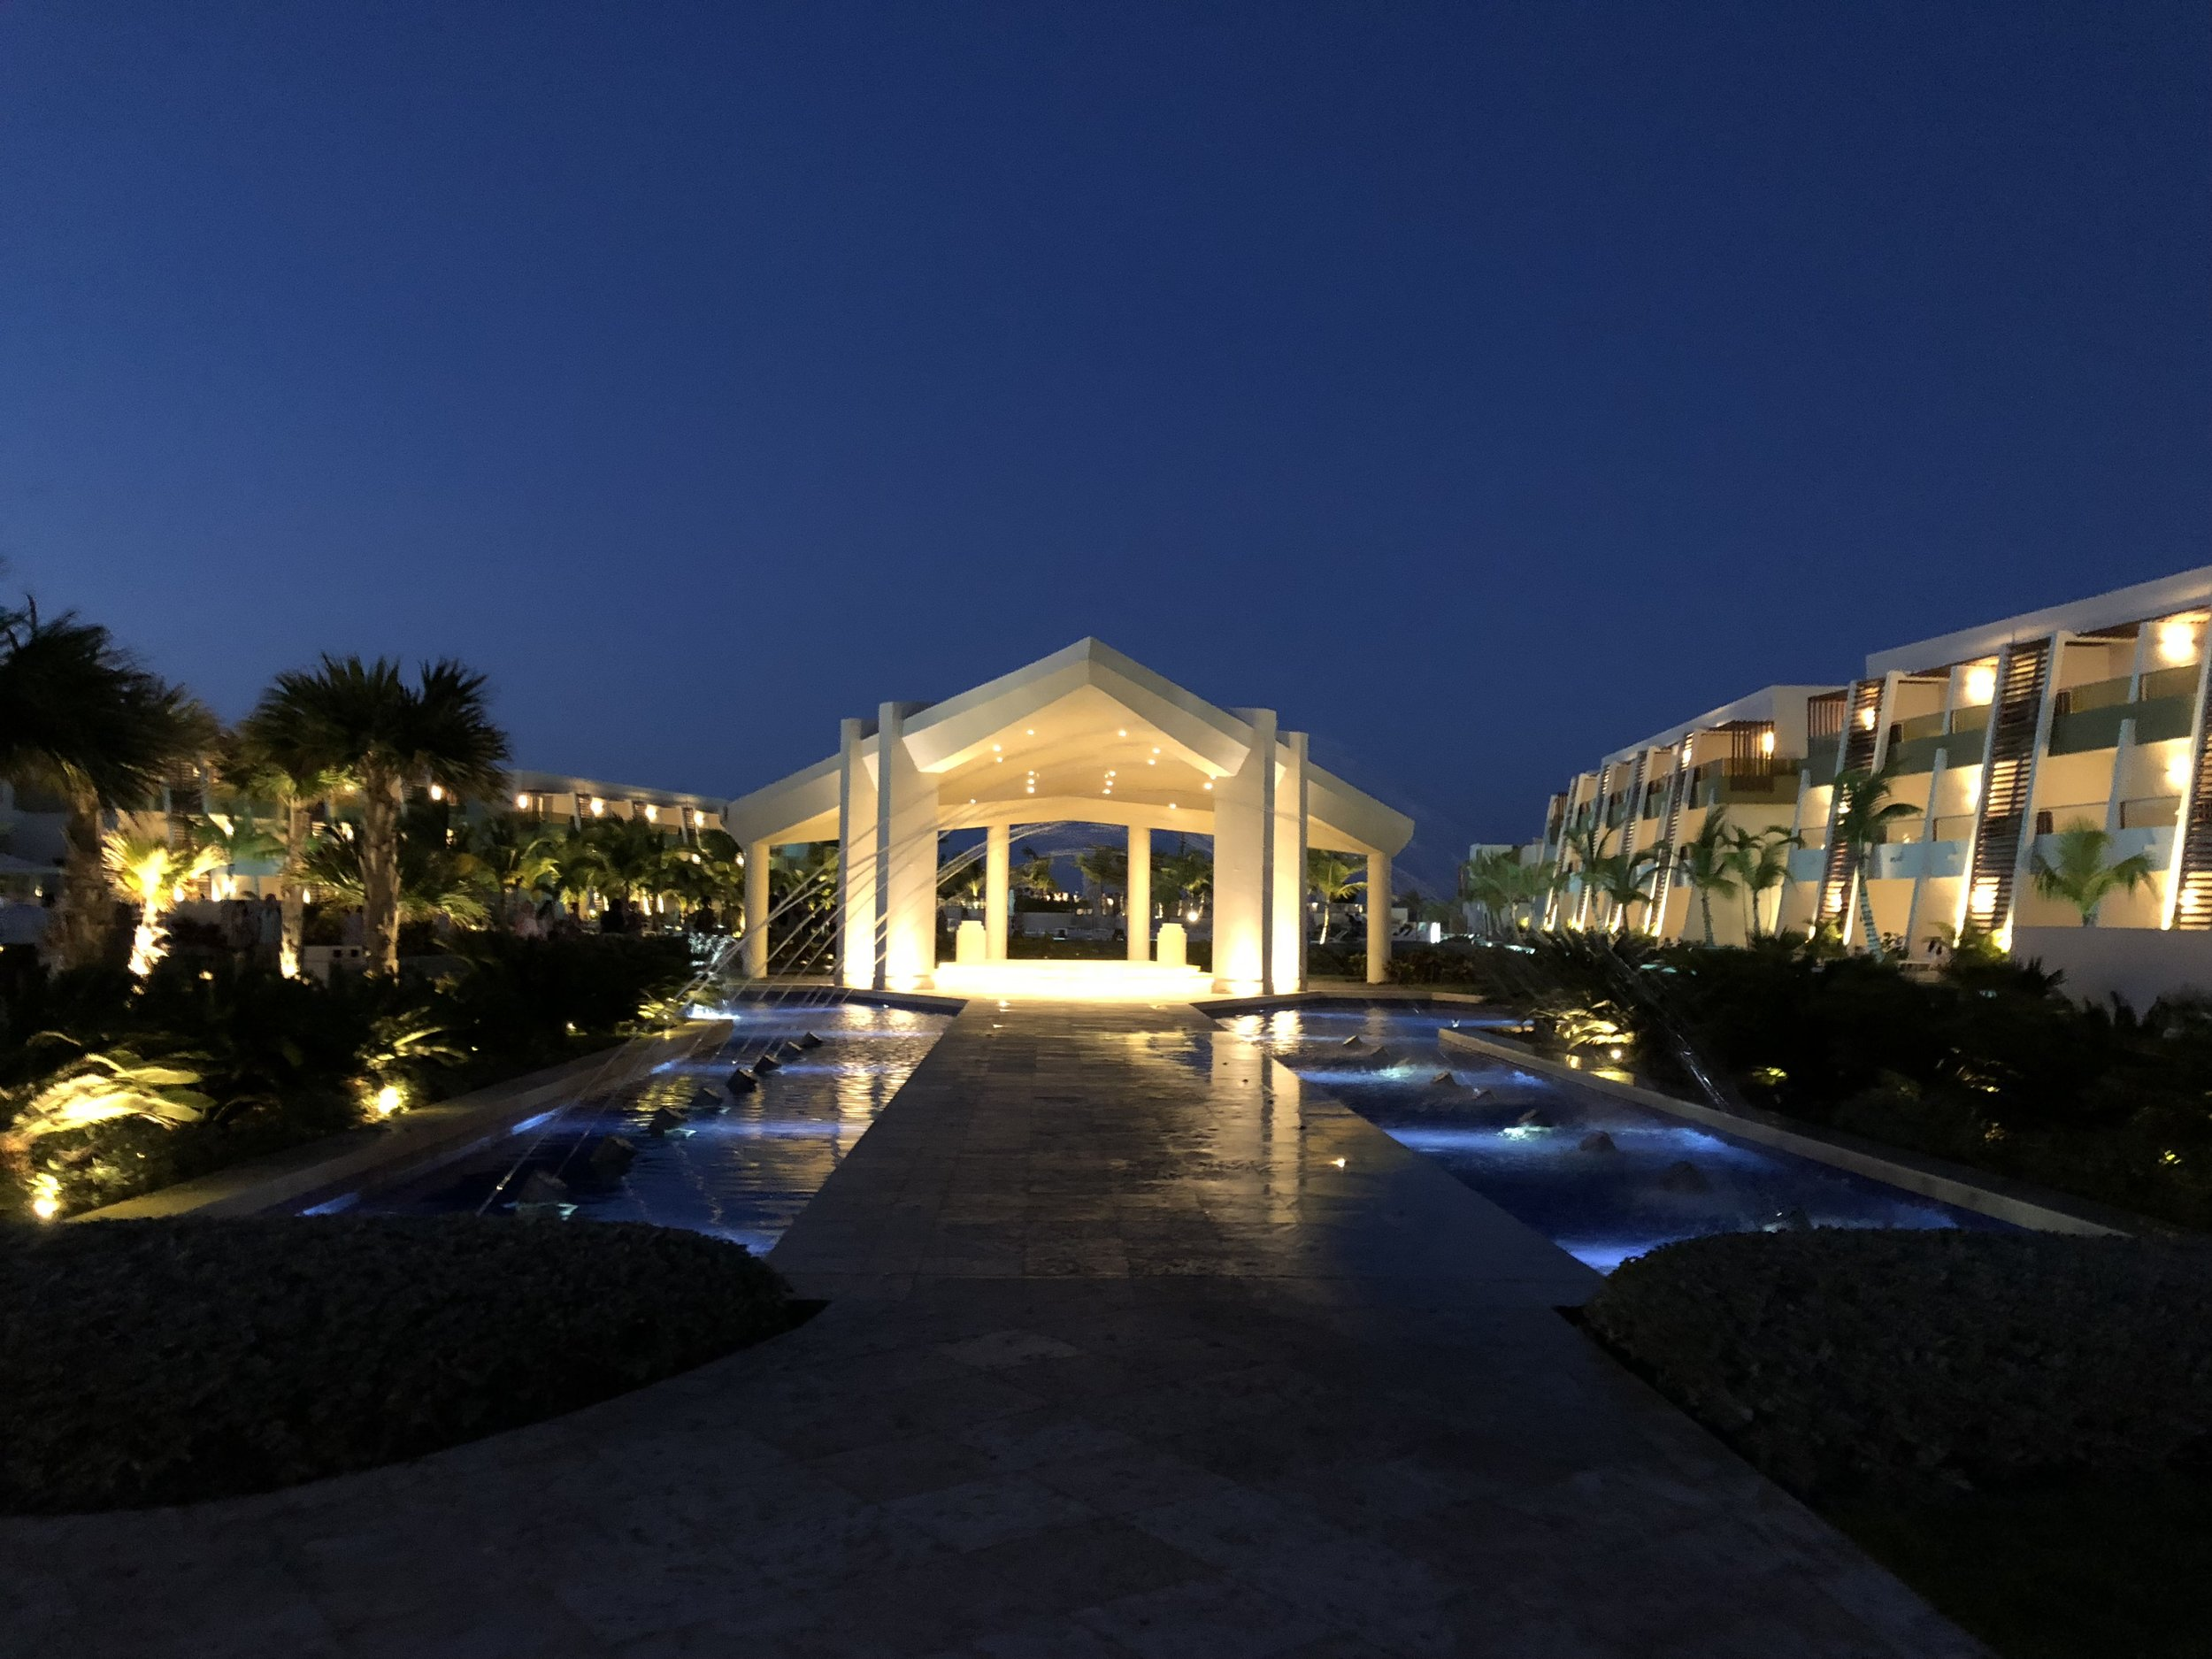 A night view of the fountain walkway to the main pool.